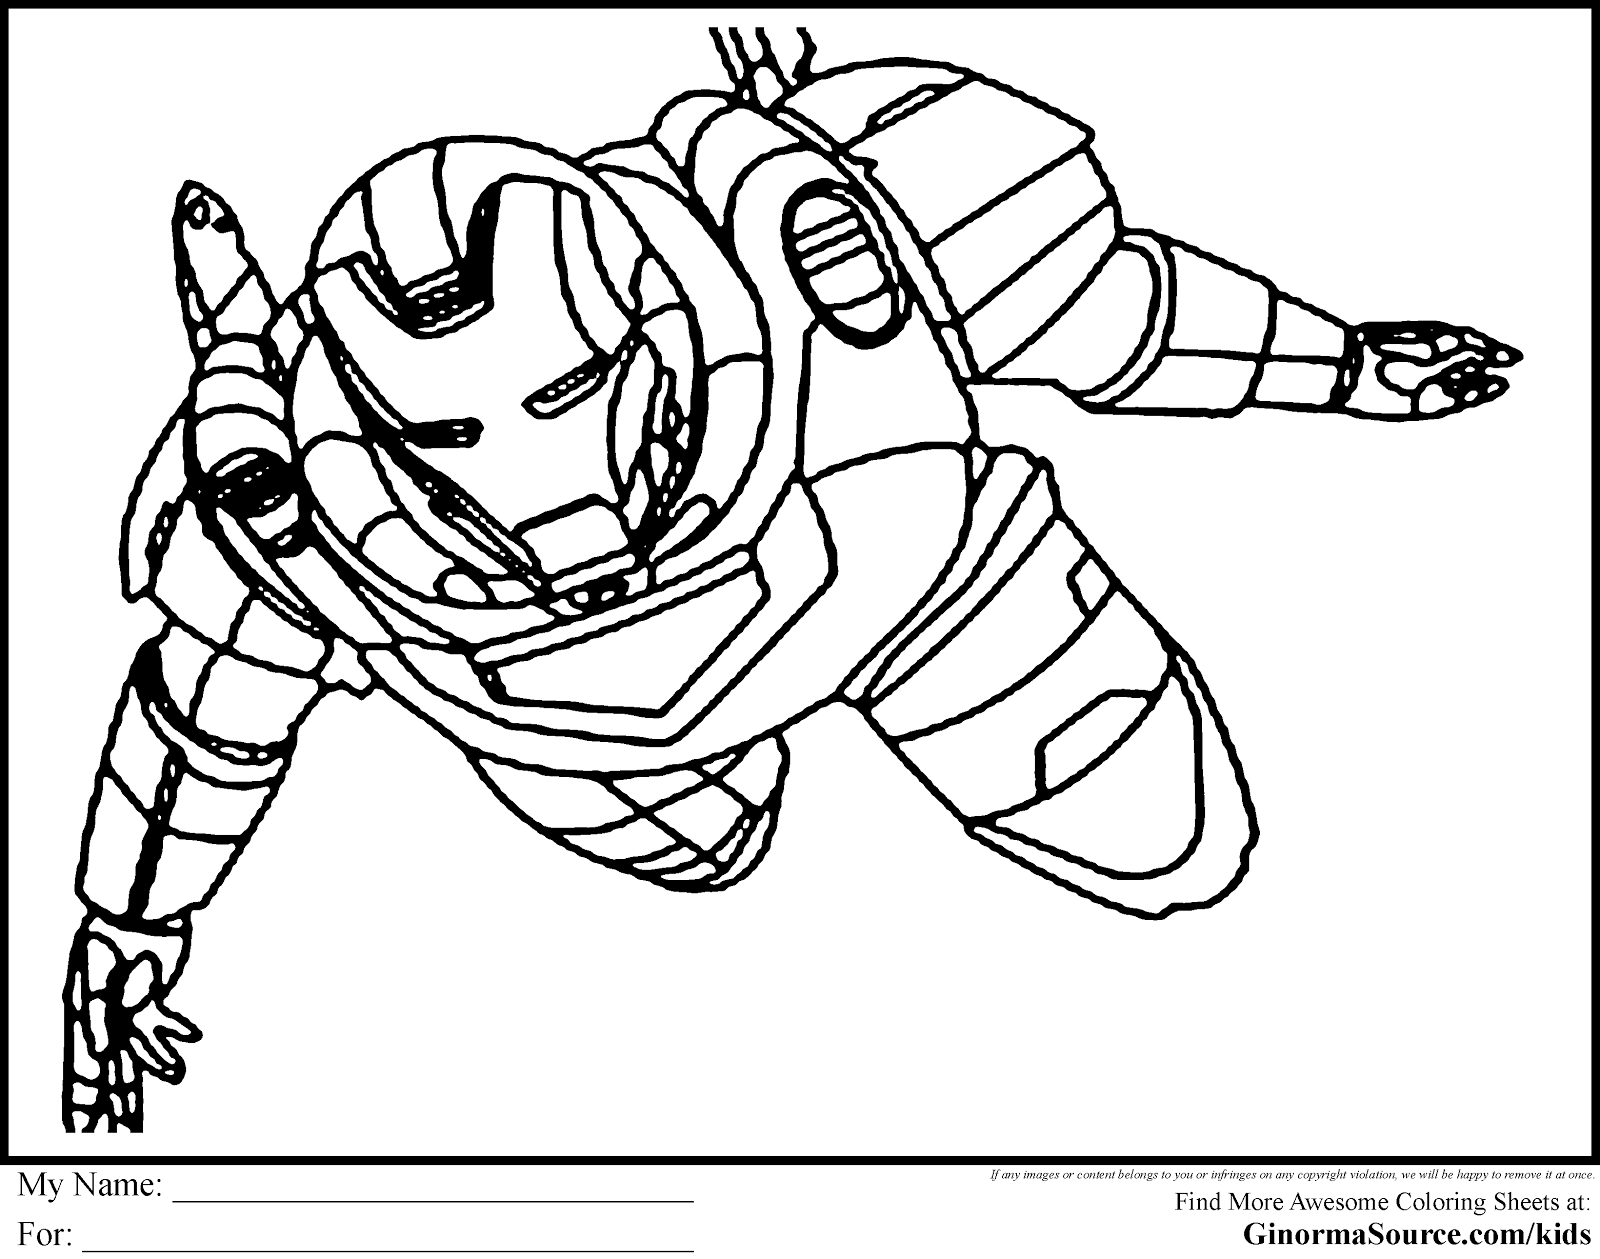 superheroes coloring pages super hero squad fantasy coloring pages coloring pages superheroes